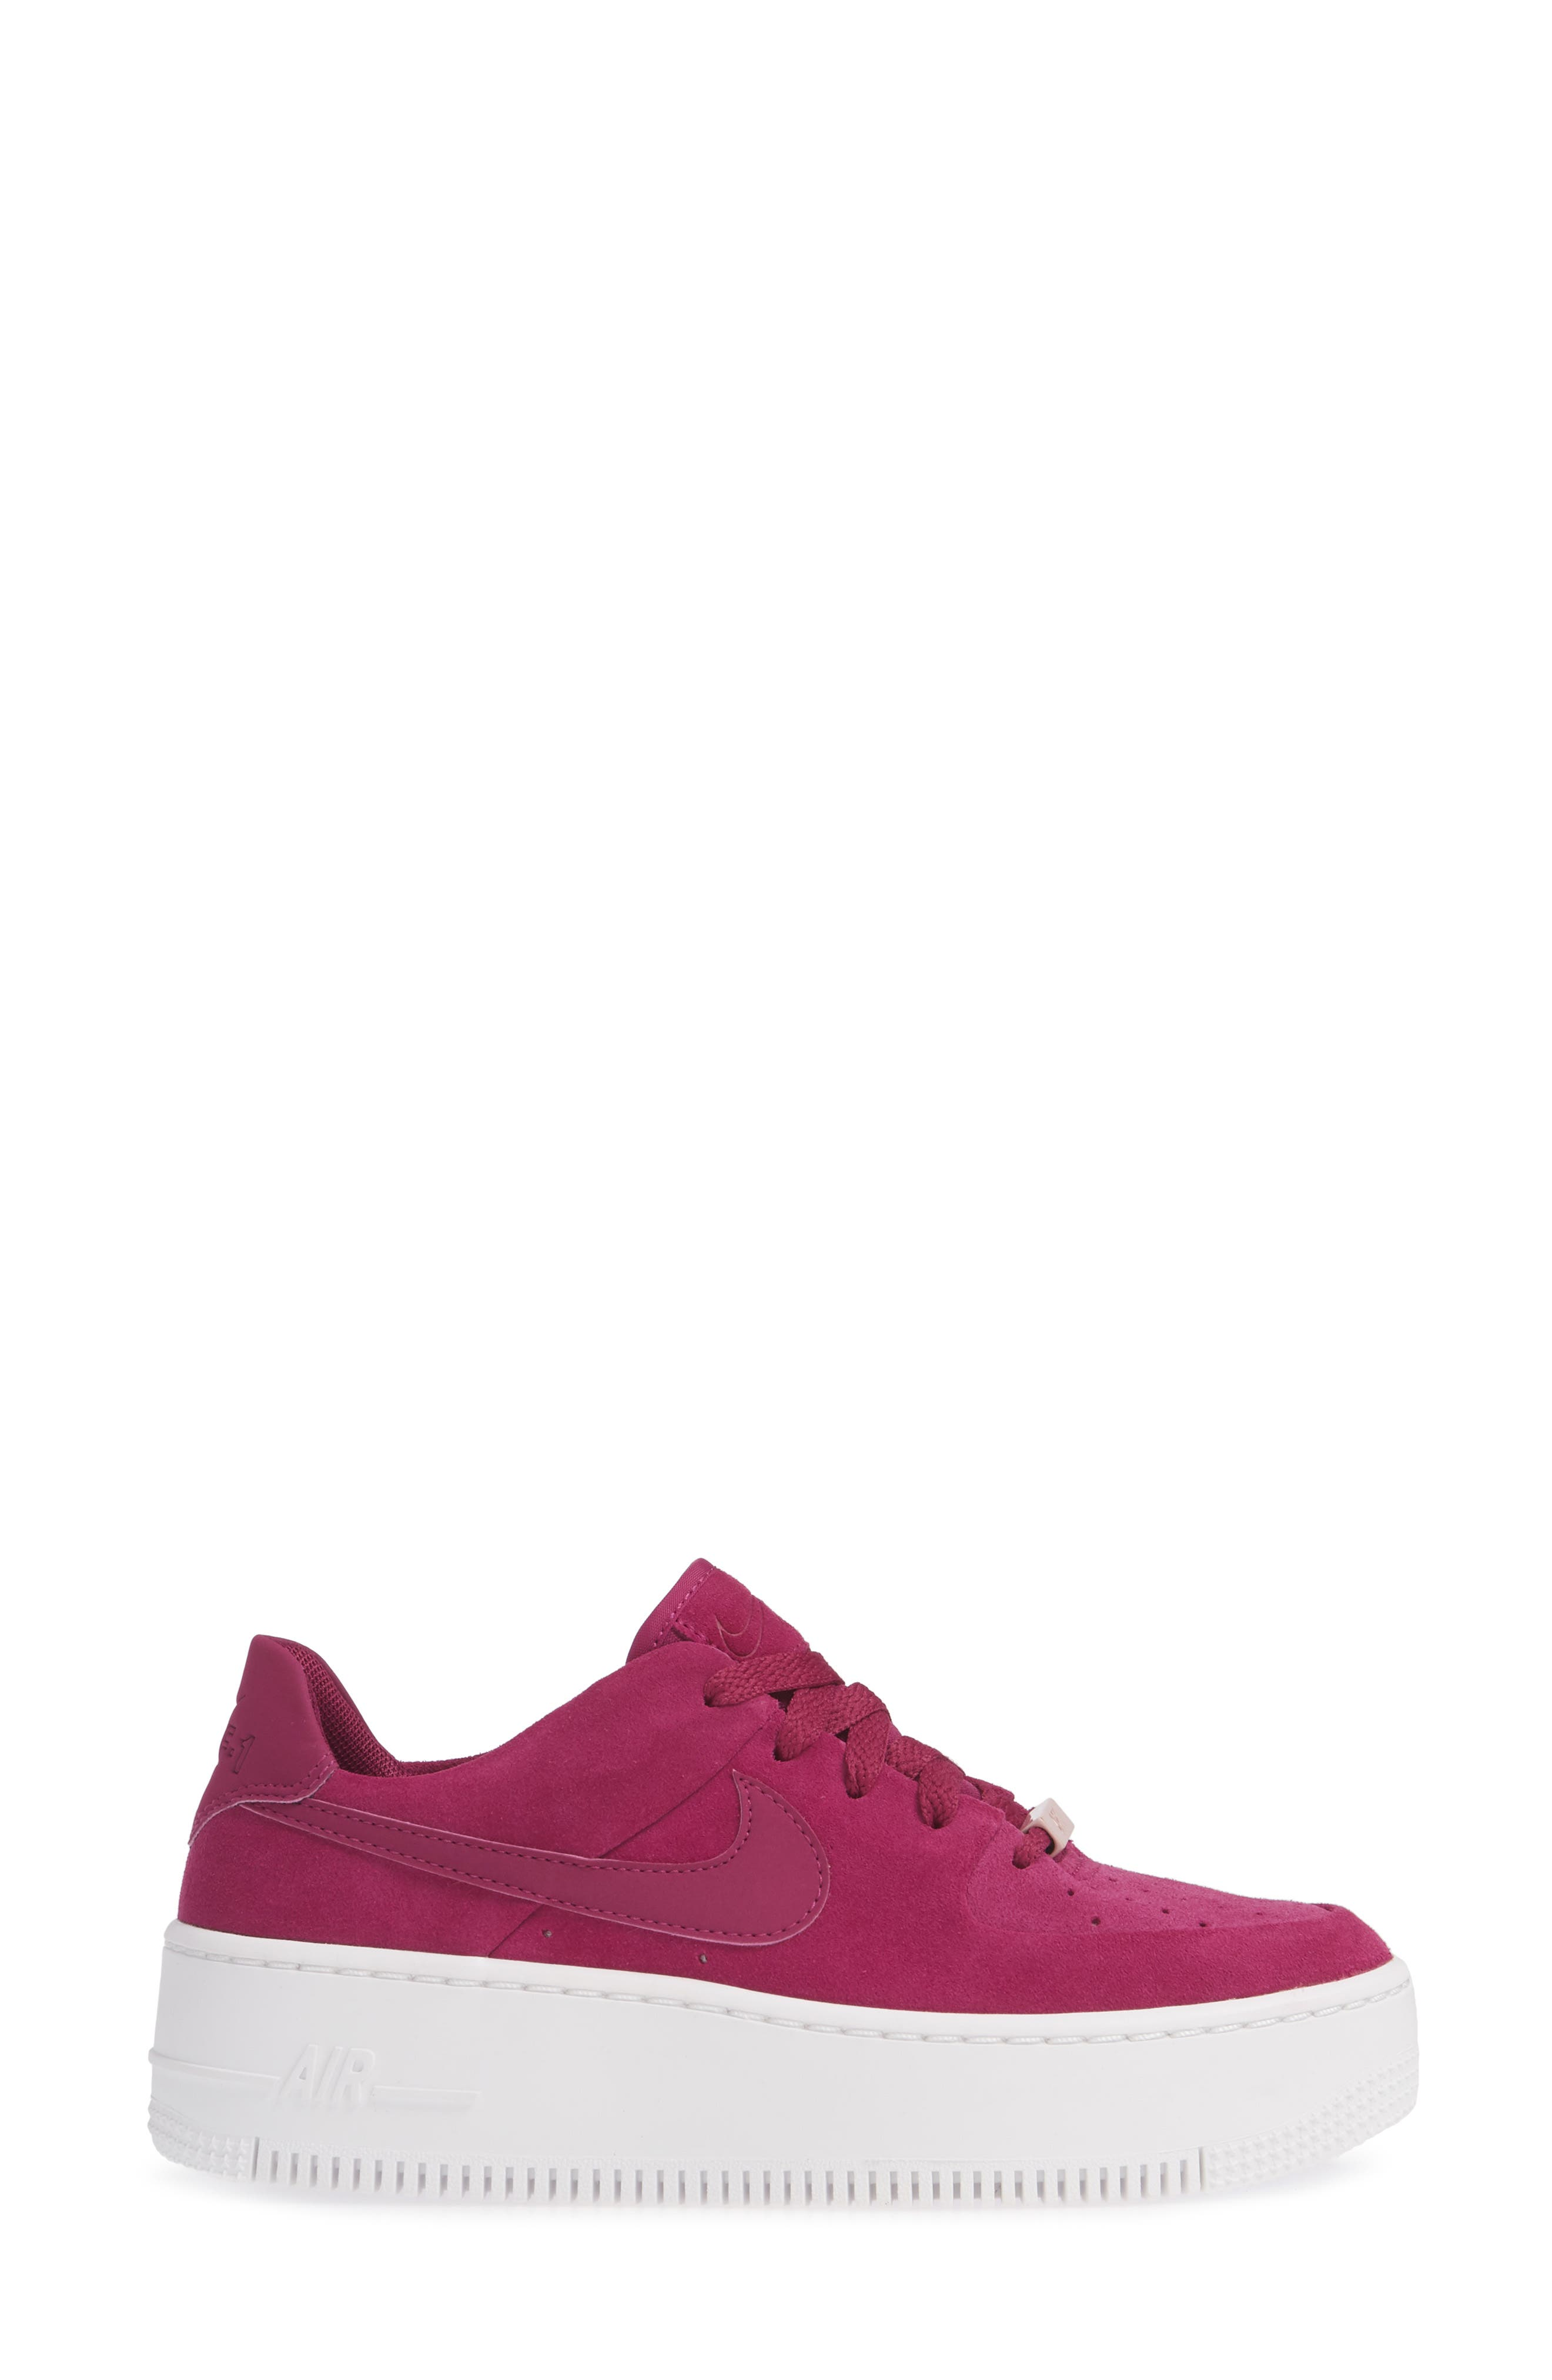 NIKE,                             Air Force 1 Sage Low Platform Sneaker,                             Alternate thumbnail 3, color,                             TRUE BERRY/ PLUM CHALK